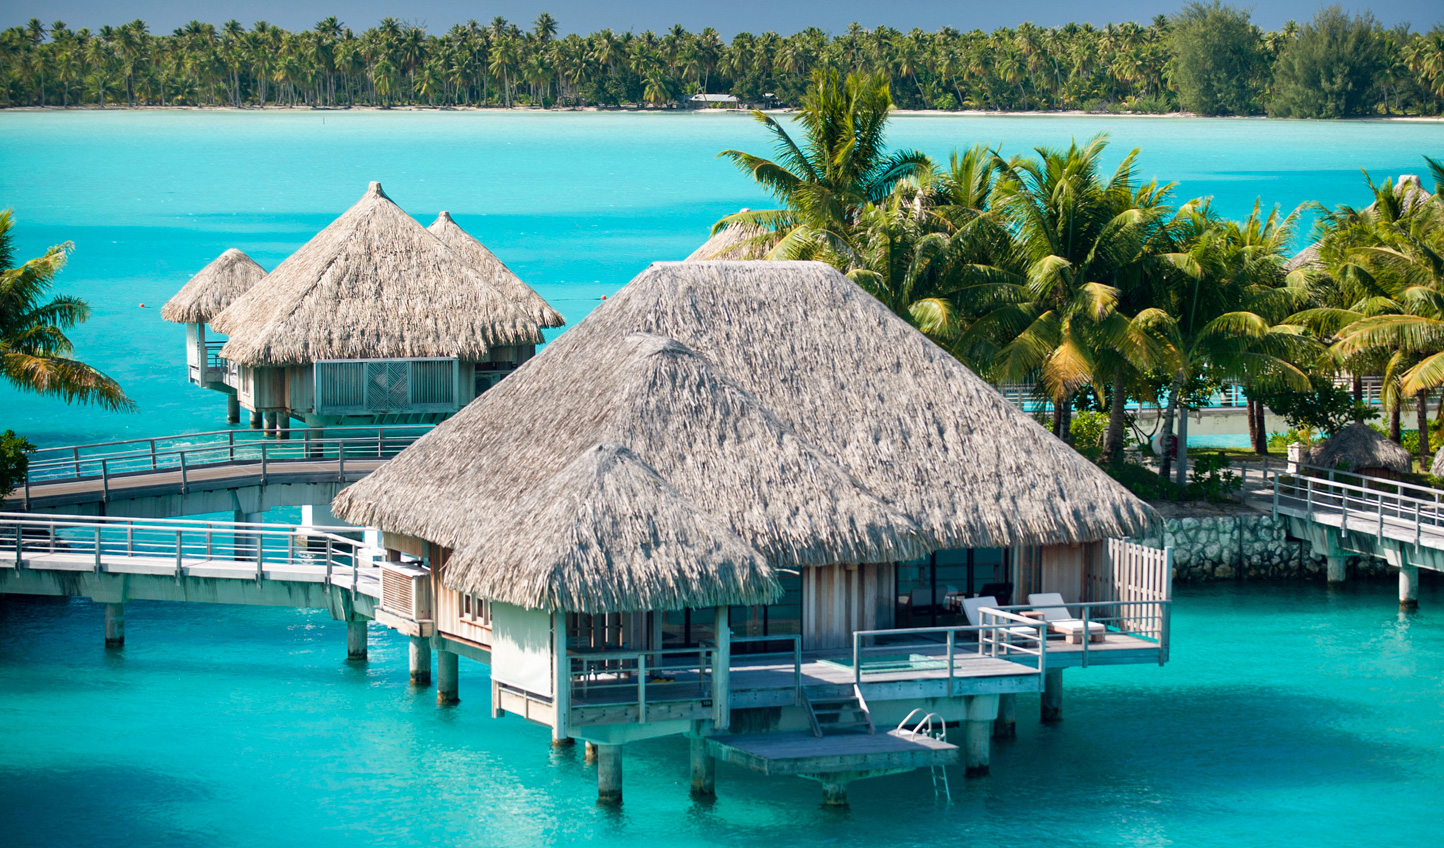 An iconic stay in an overwater villa